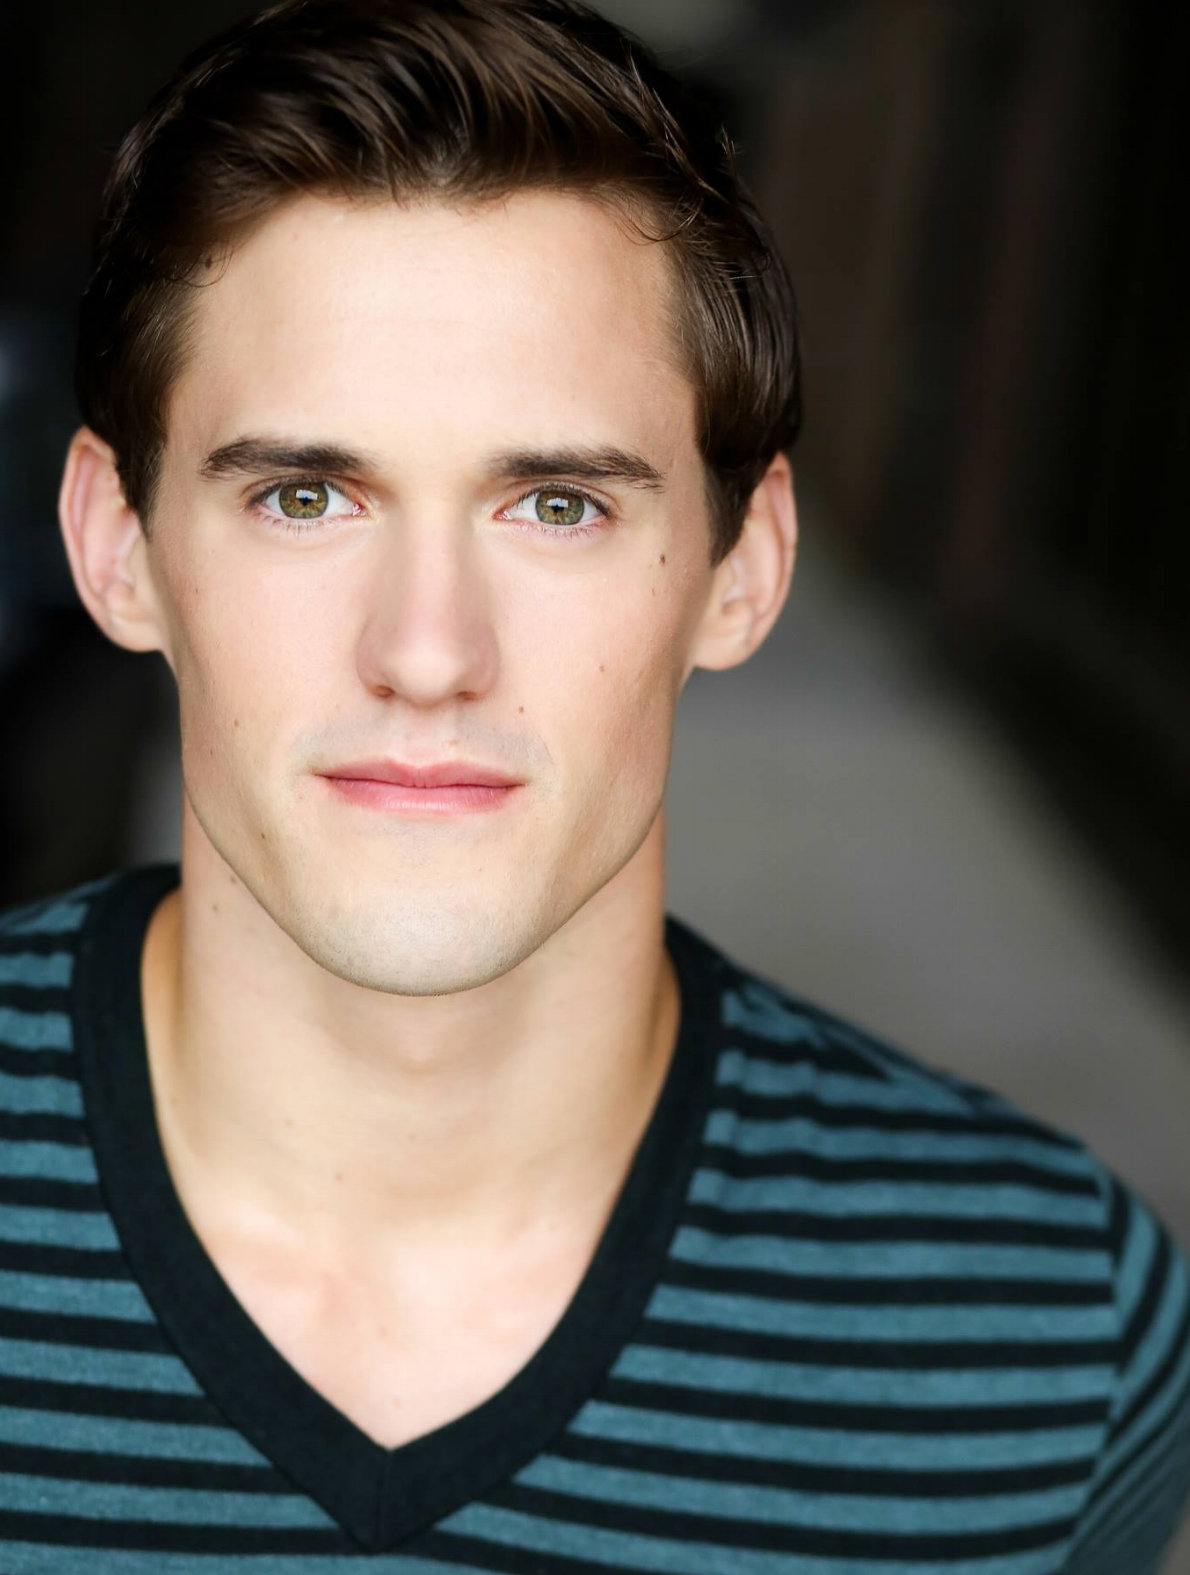 National Tour: Book of Mormon (Elder Price), South Pacific (Cable)-Guthrie Theatre, Billy Elliot-North Shore Music Theatre